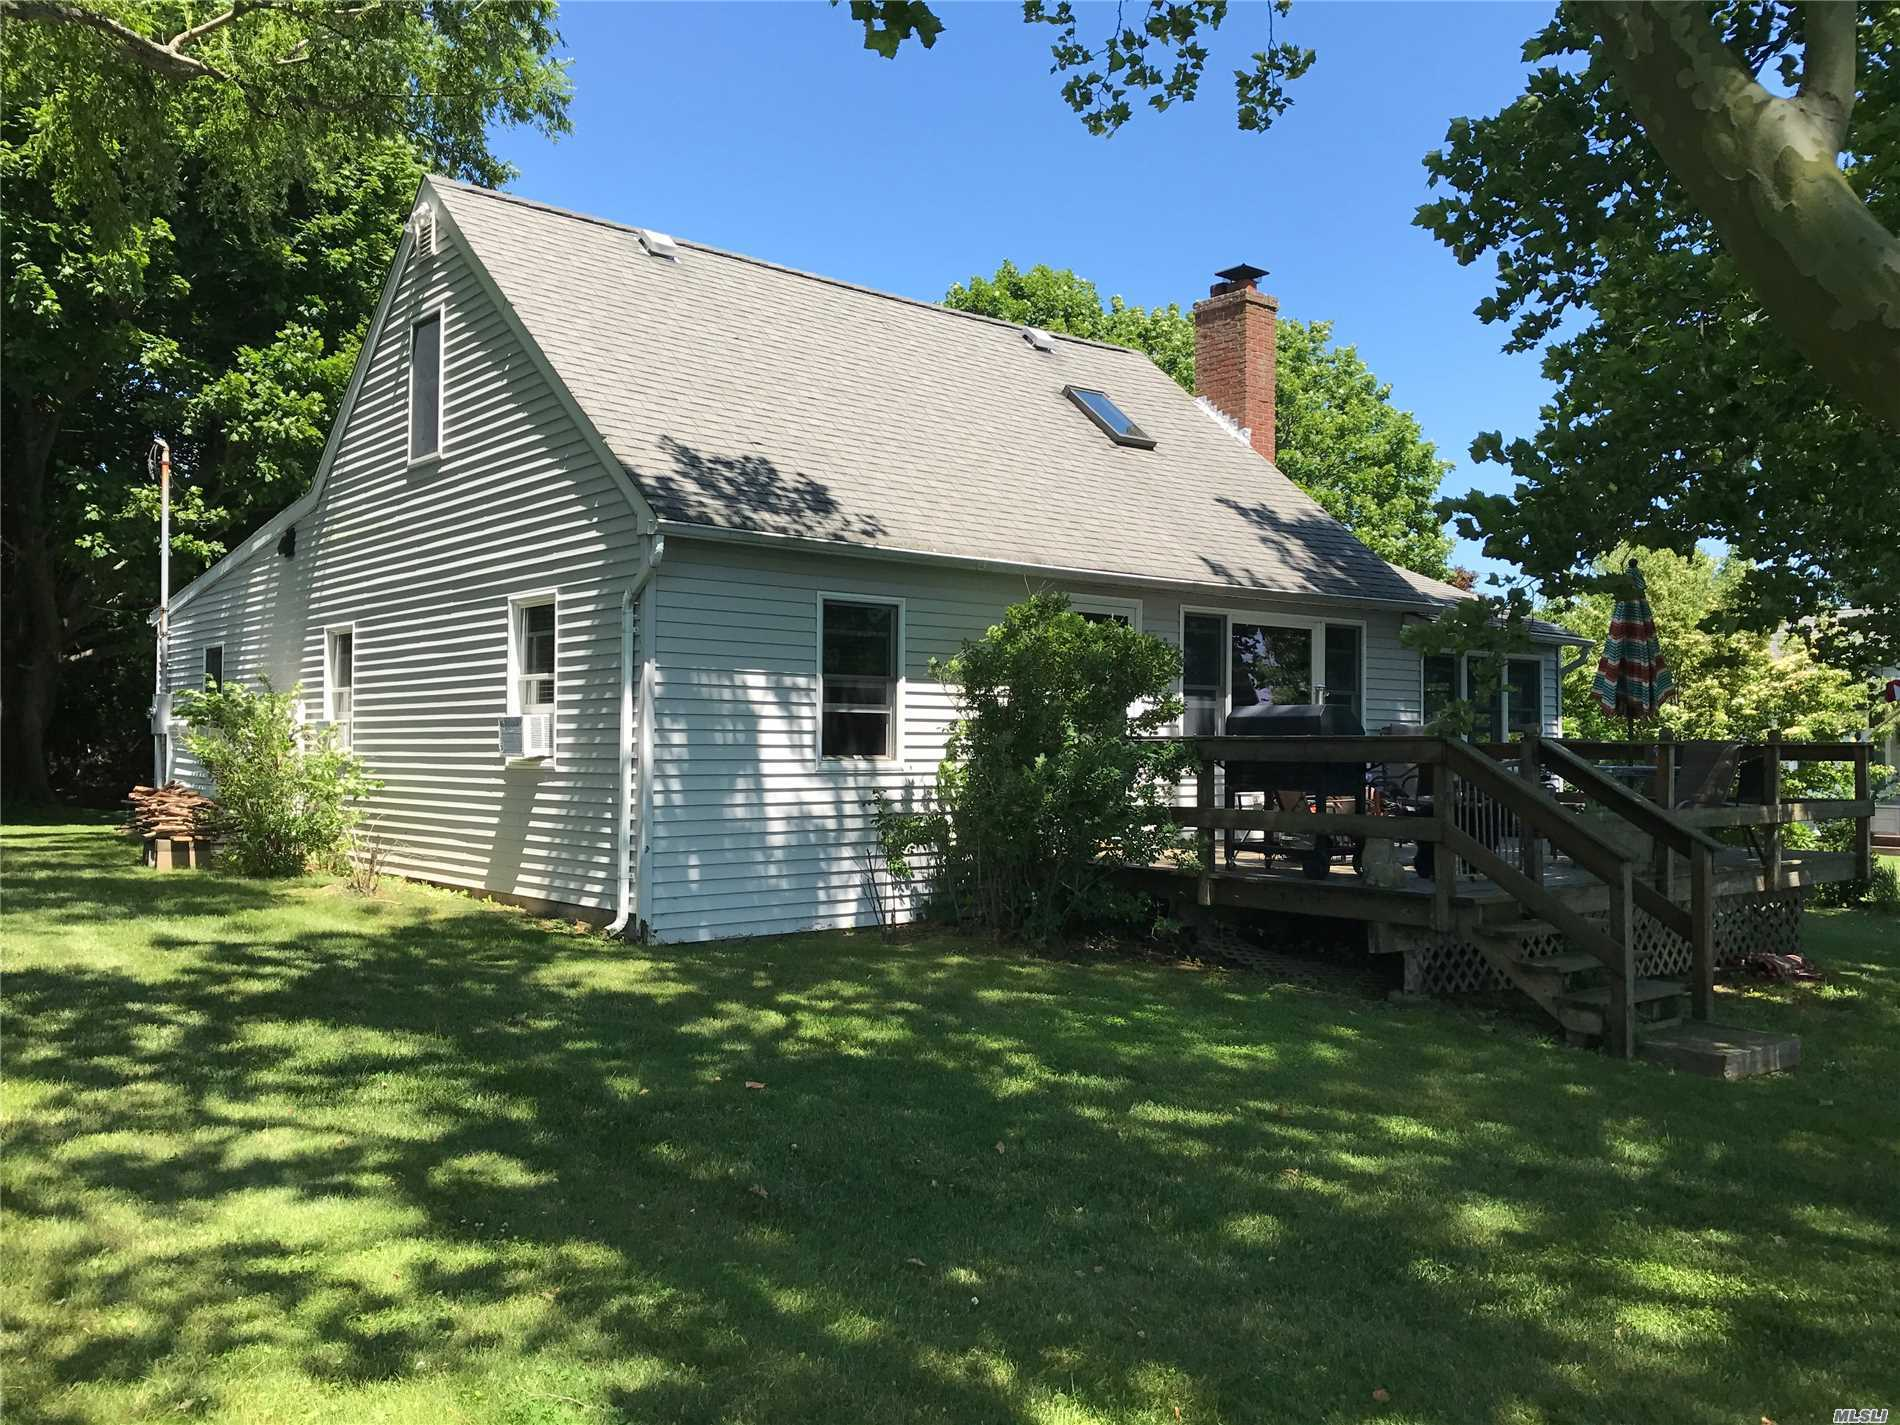 1875 Bayview Ave - Southold, New York